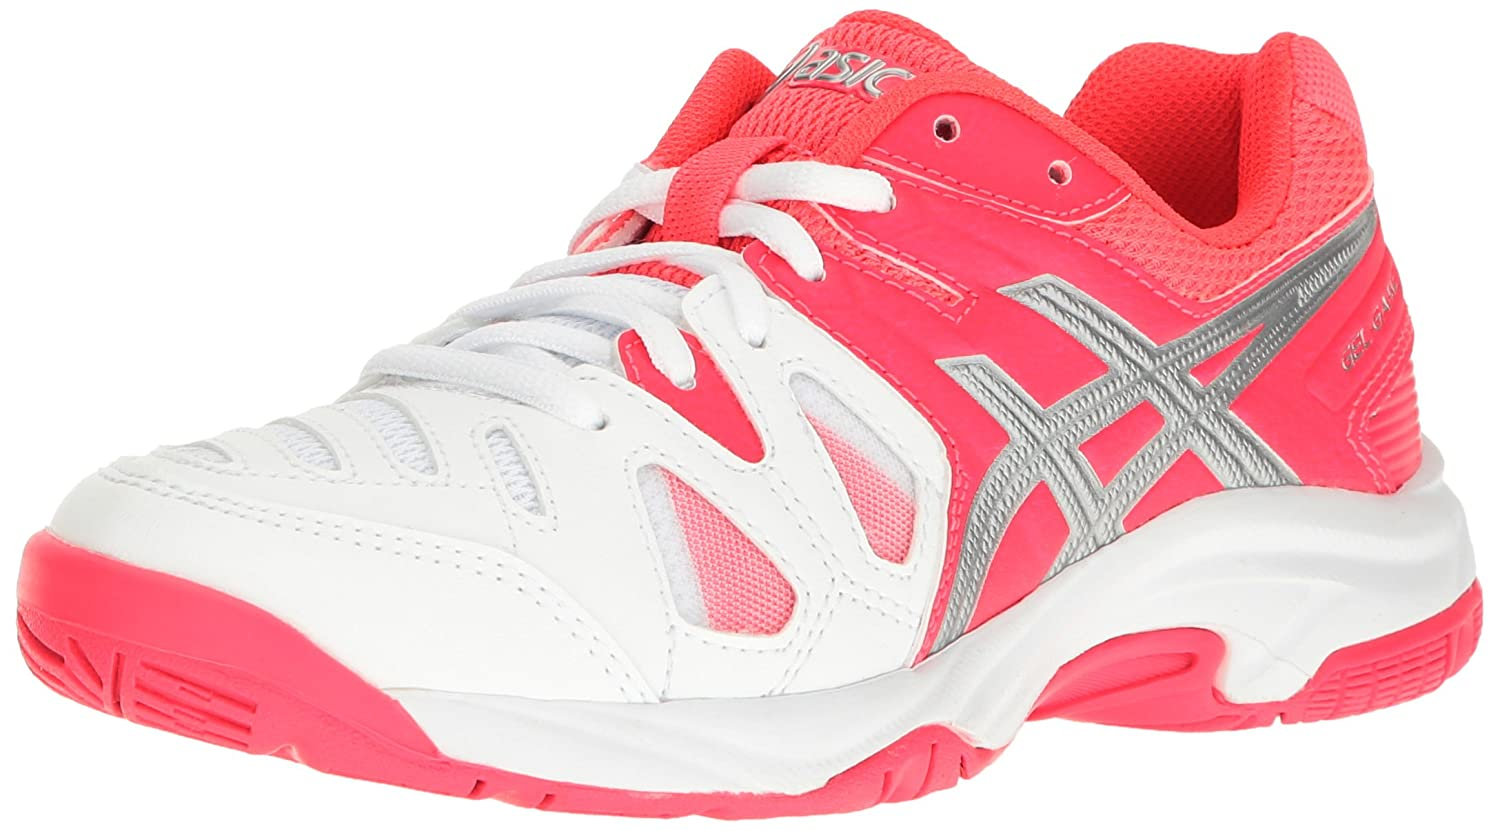 Asics Gel Game 5 Junior Tennis Shoe White/Pink/Silver